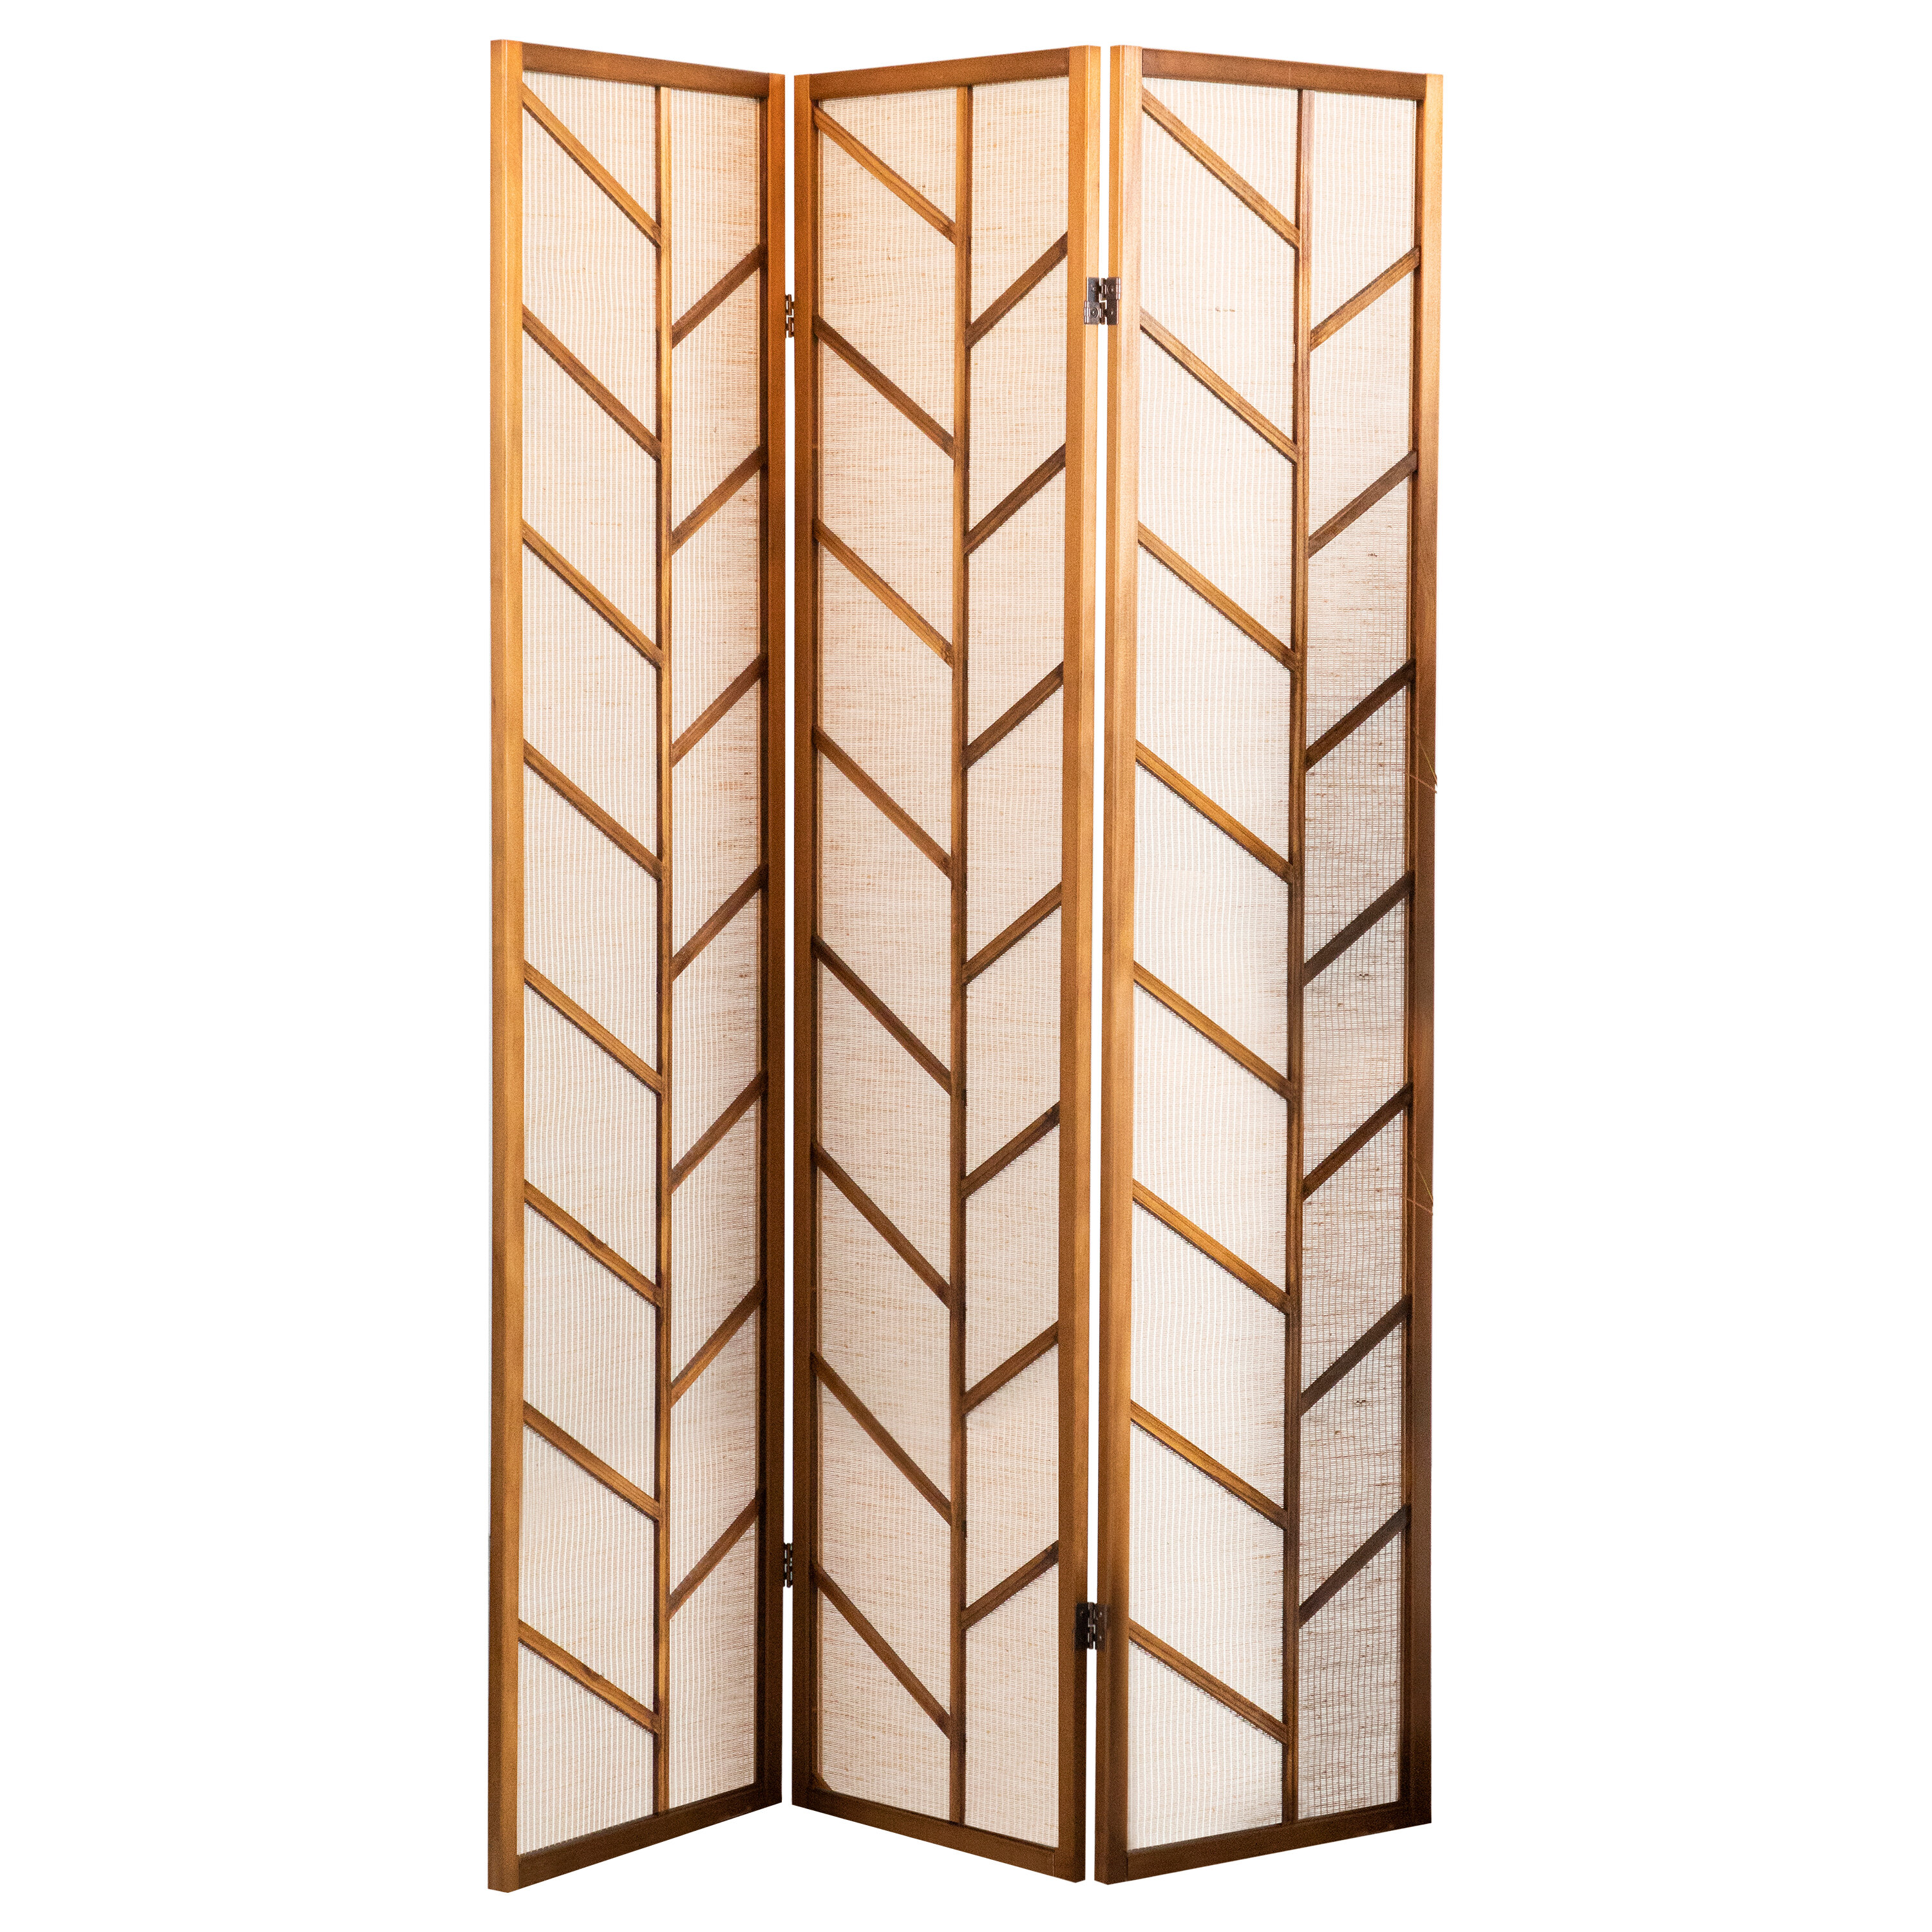 3 Panel Gracie Oaks Room Dividers You Ll Love In 2021 Wayfair